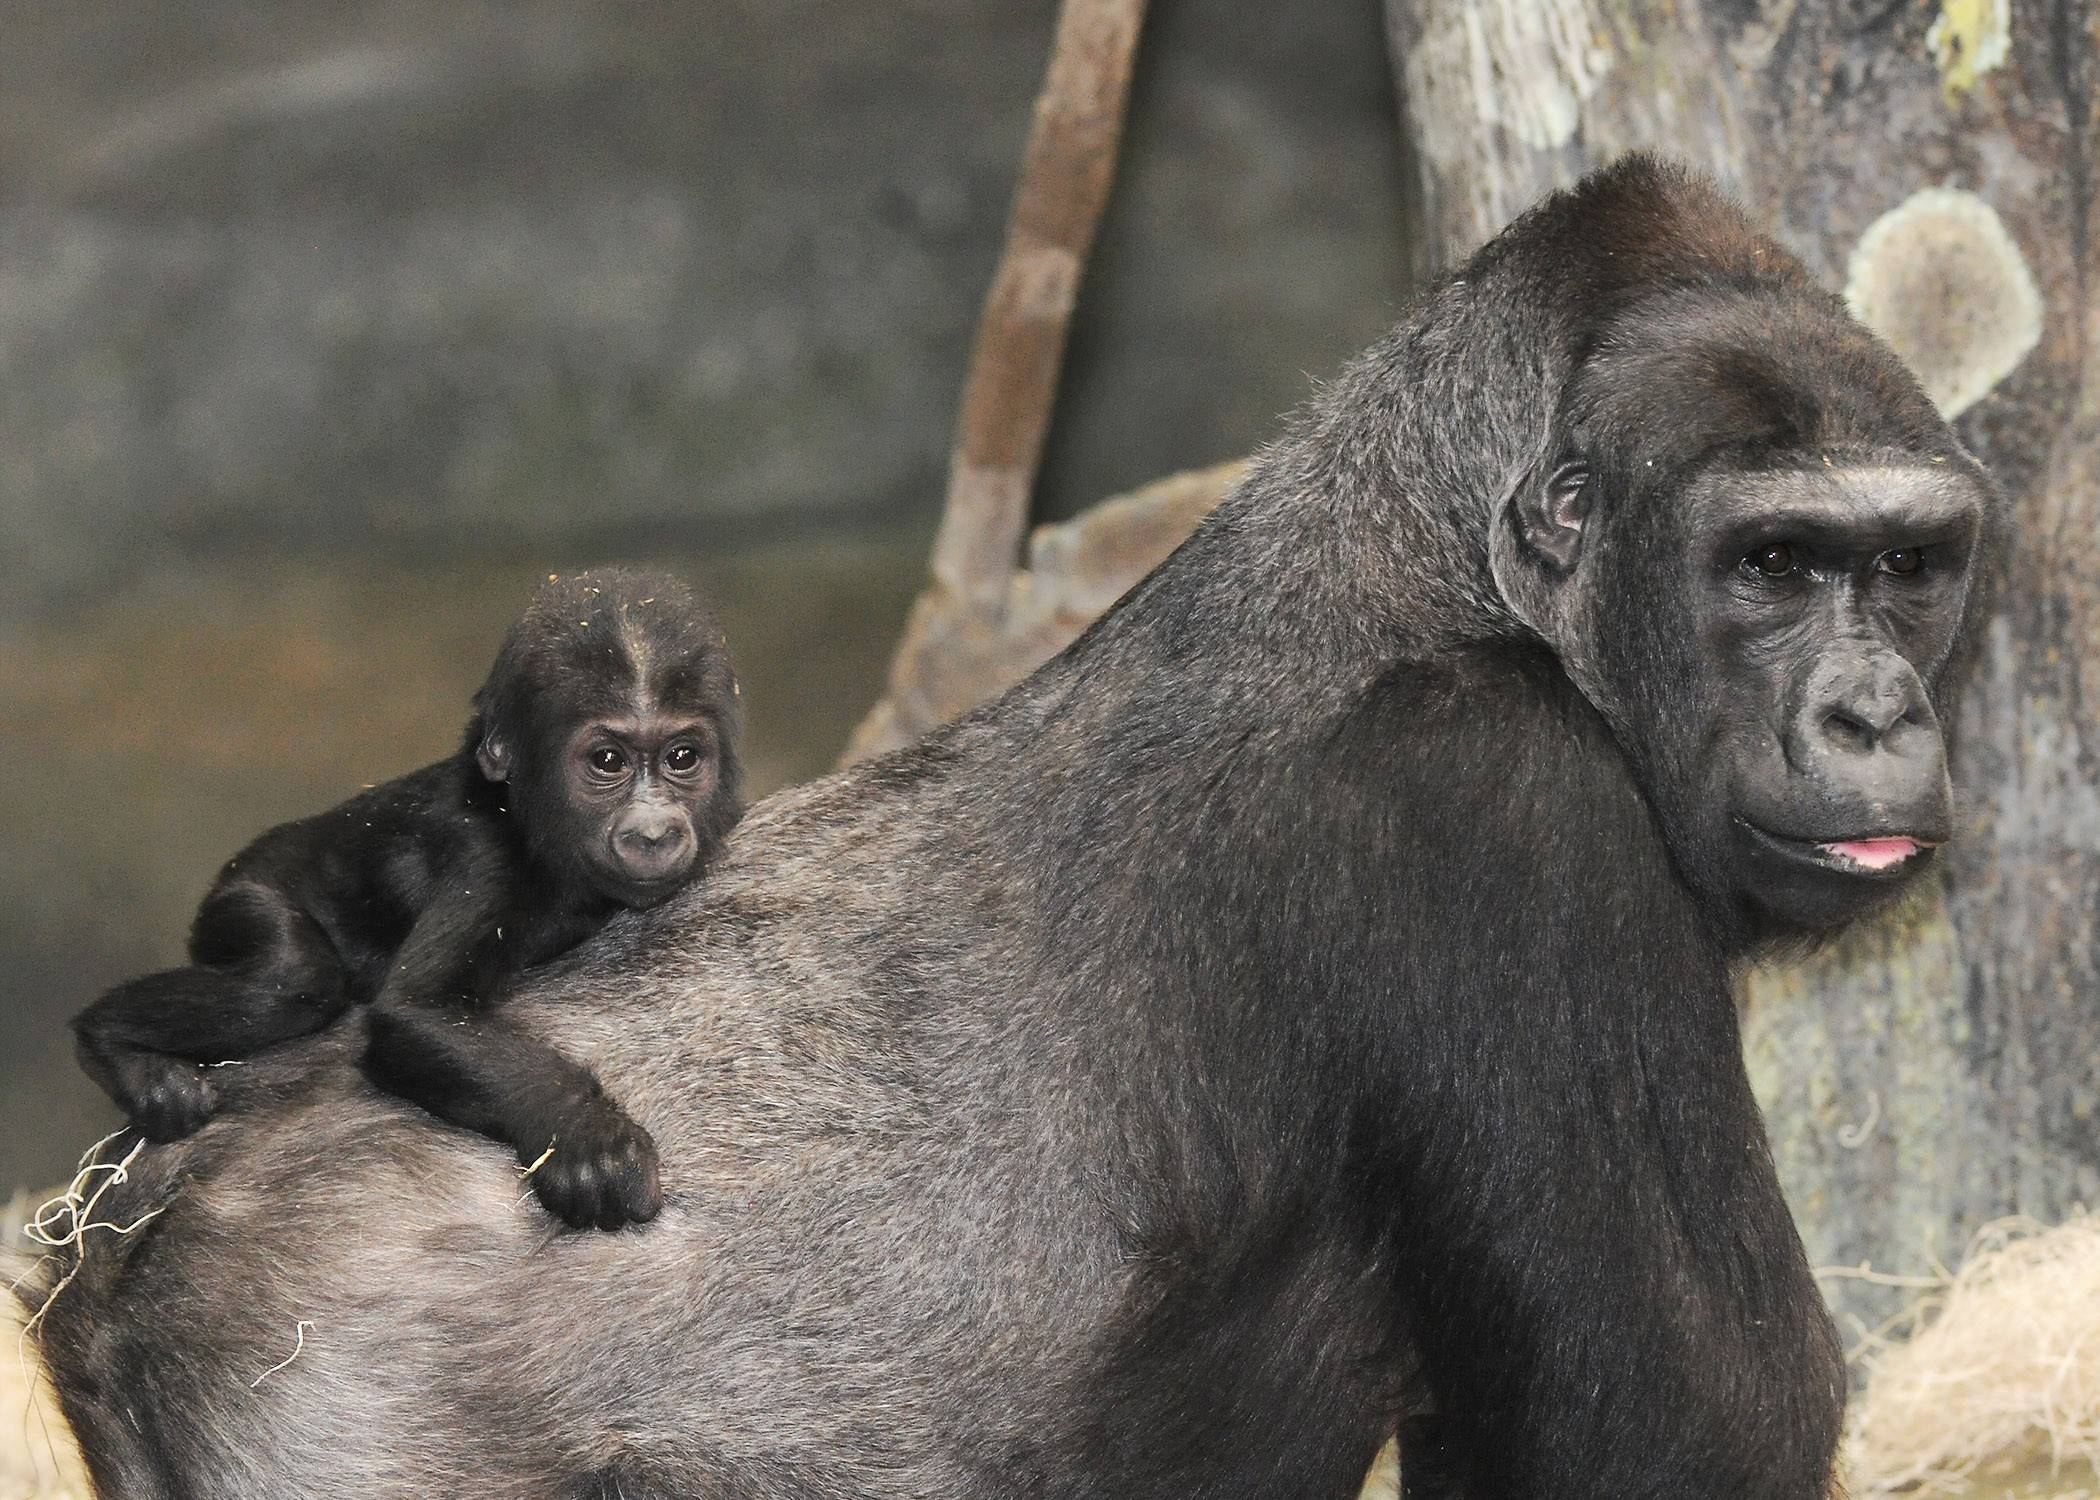 Following the Mother's Day Brunch at Brookfield Zoo, guests can tour the zoo and see gorilla mother Koola, and her 5-month-old daughter, Nora, in the zoo's Tropic World area.